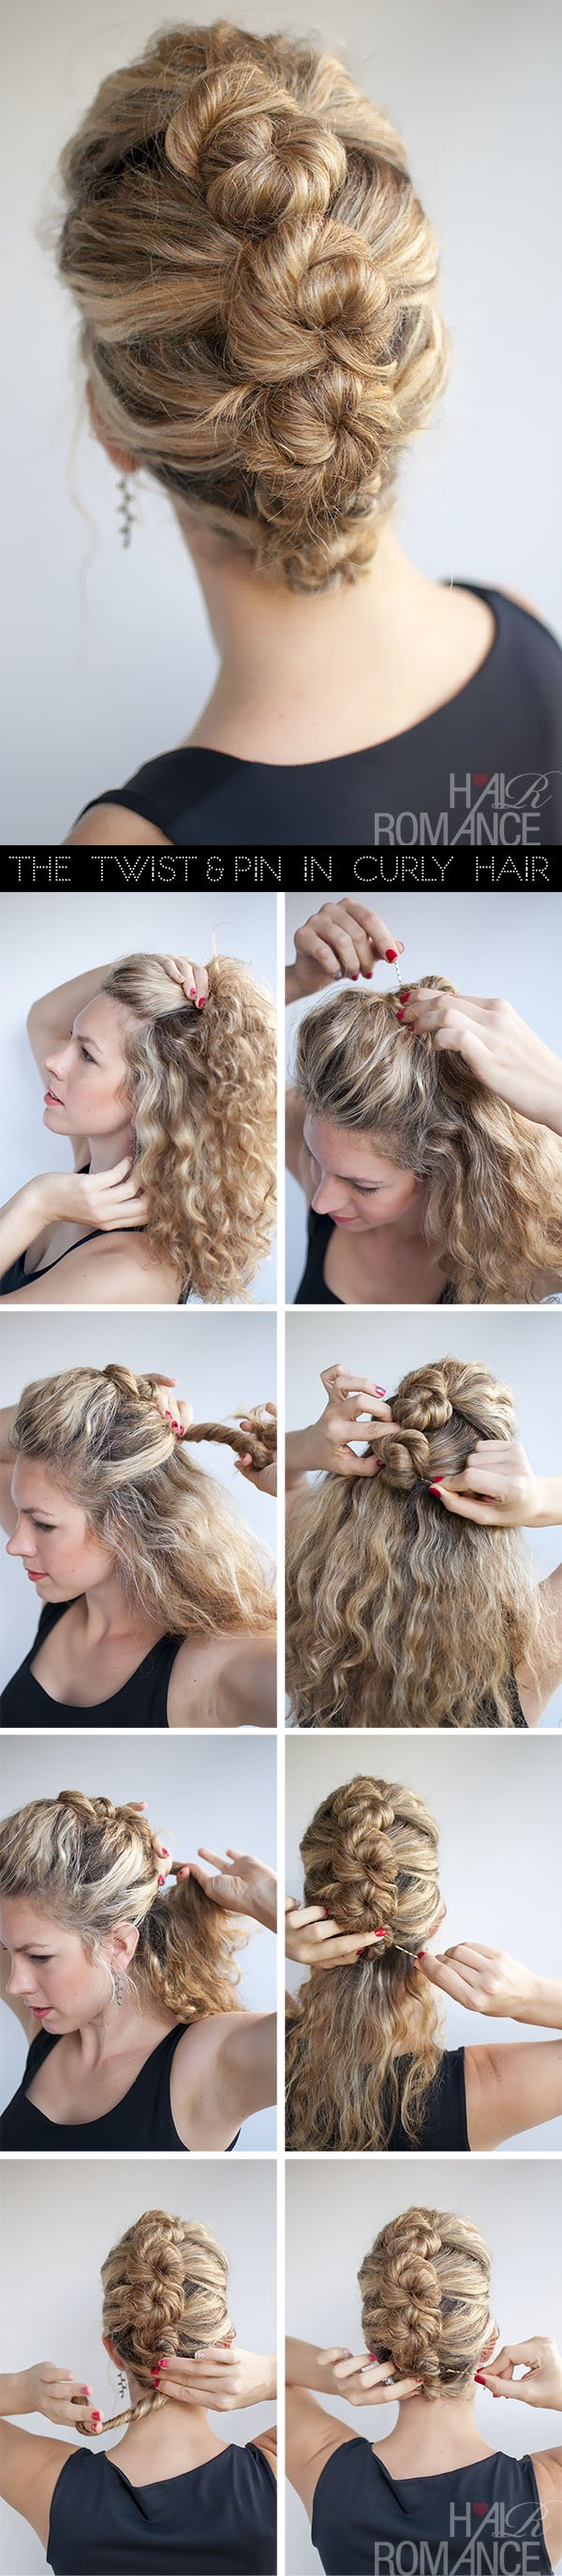 Pinned updo for curly hair